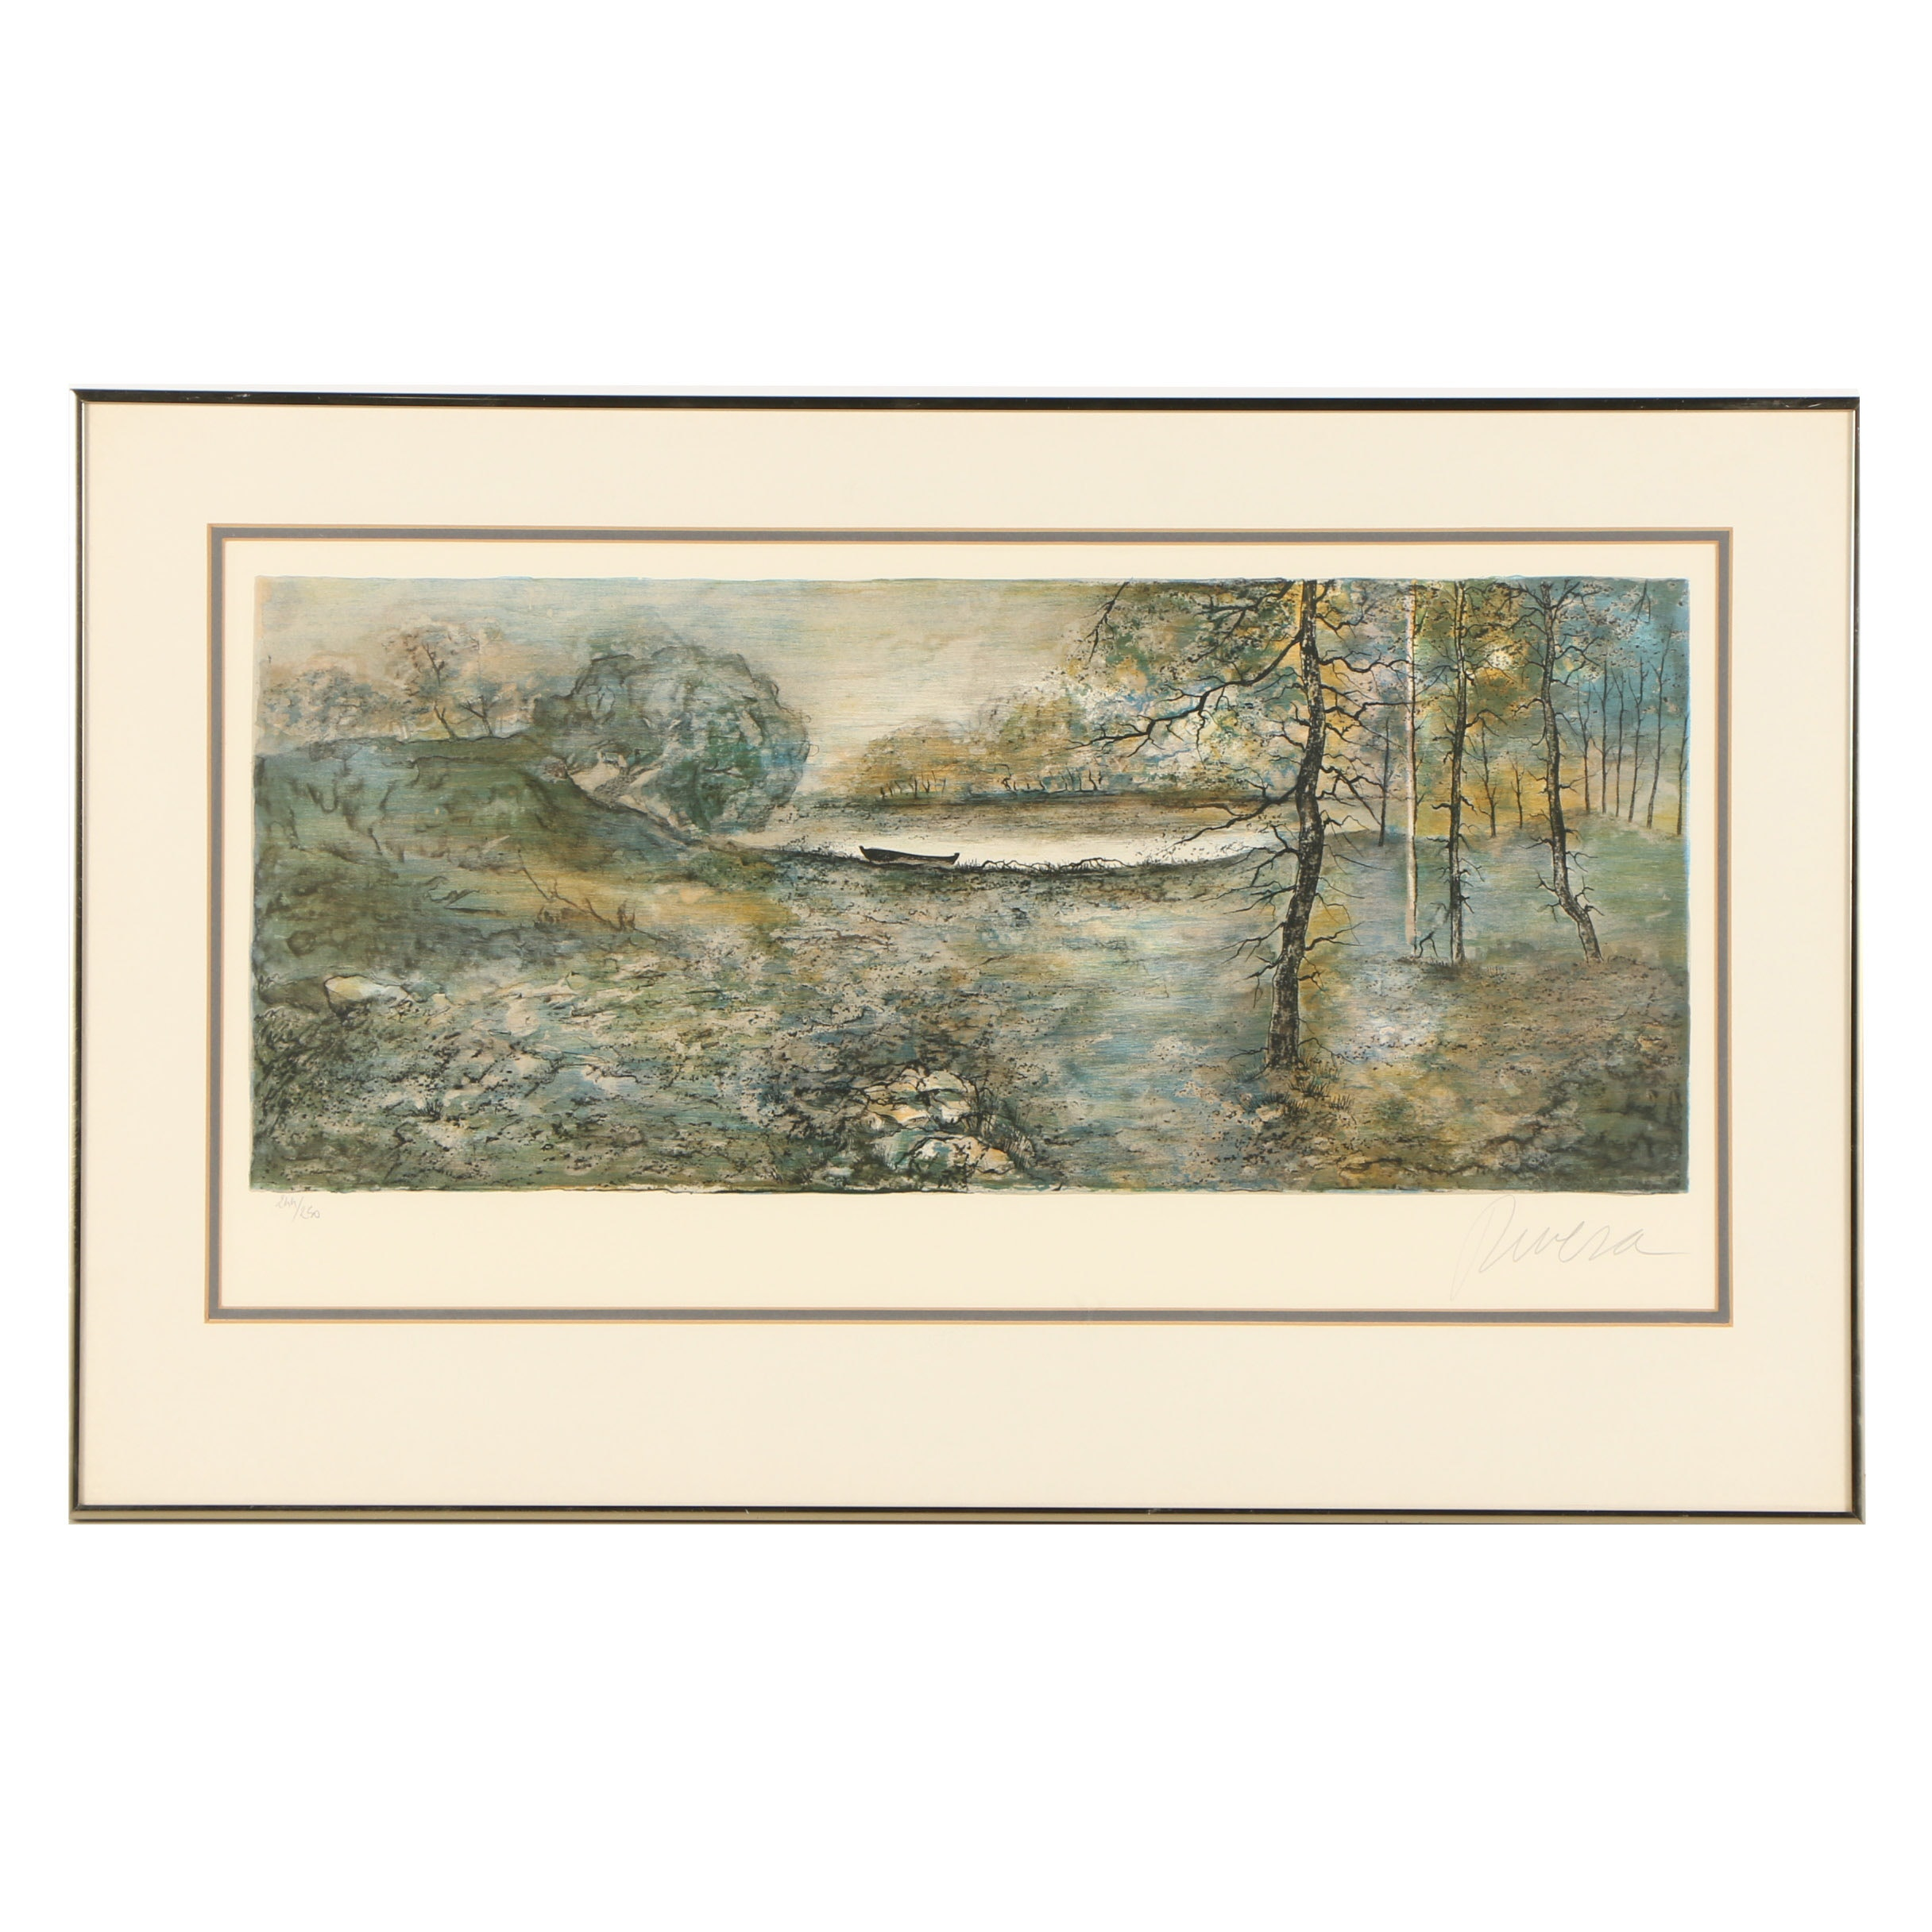 Rivera Limited Edition Lithograph of a Landscape